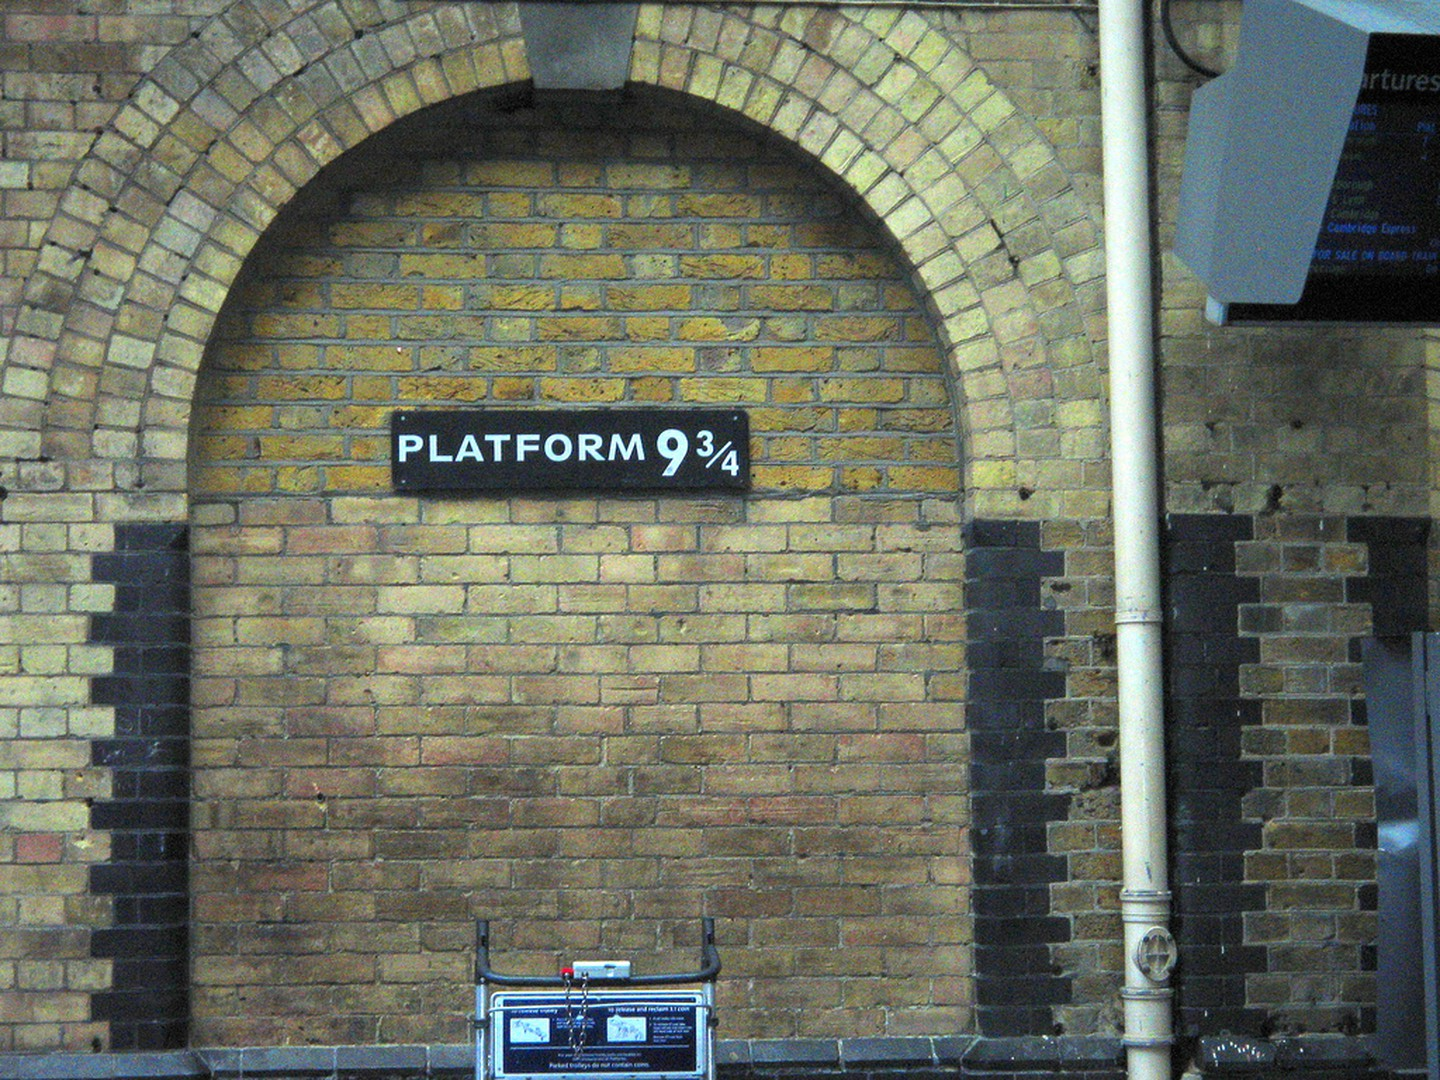 Platform 9 3/4 - Last call for all of those aboard train departing from Platform 9 3/4! Out of all the signs included in this list, this sign must be one of the most interesting considering it doesn't point to anything. The sign signifies the fictional Hogwarts School of Witchcraft and Wizardry from the film Harry Potter.